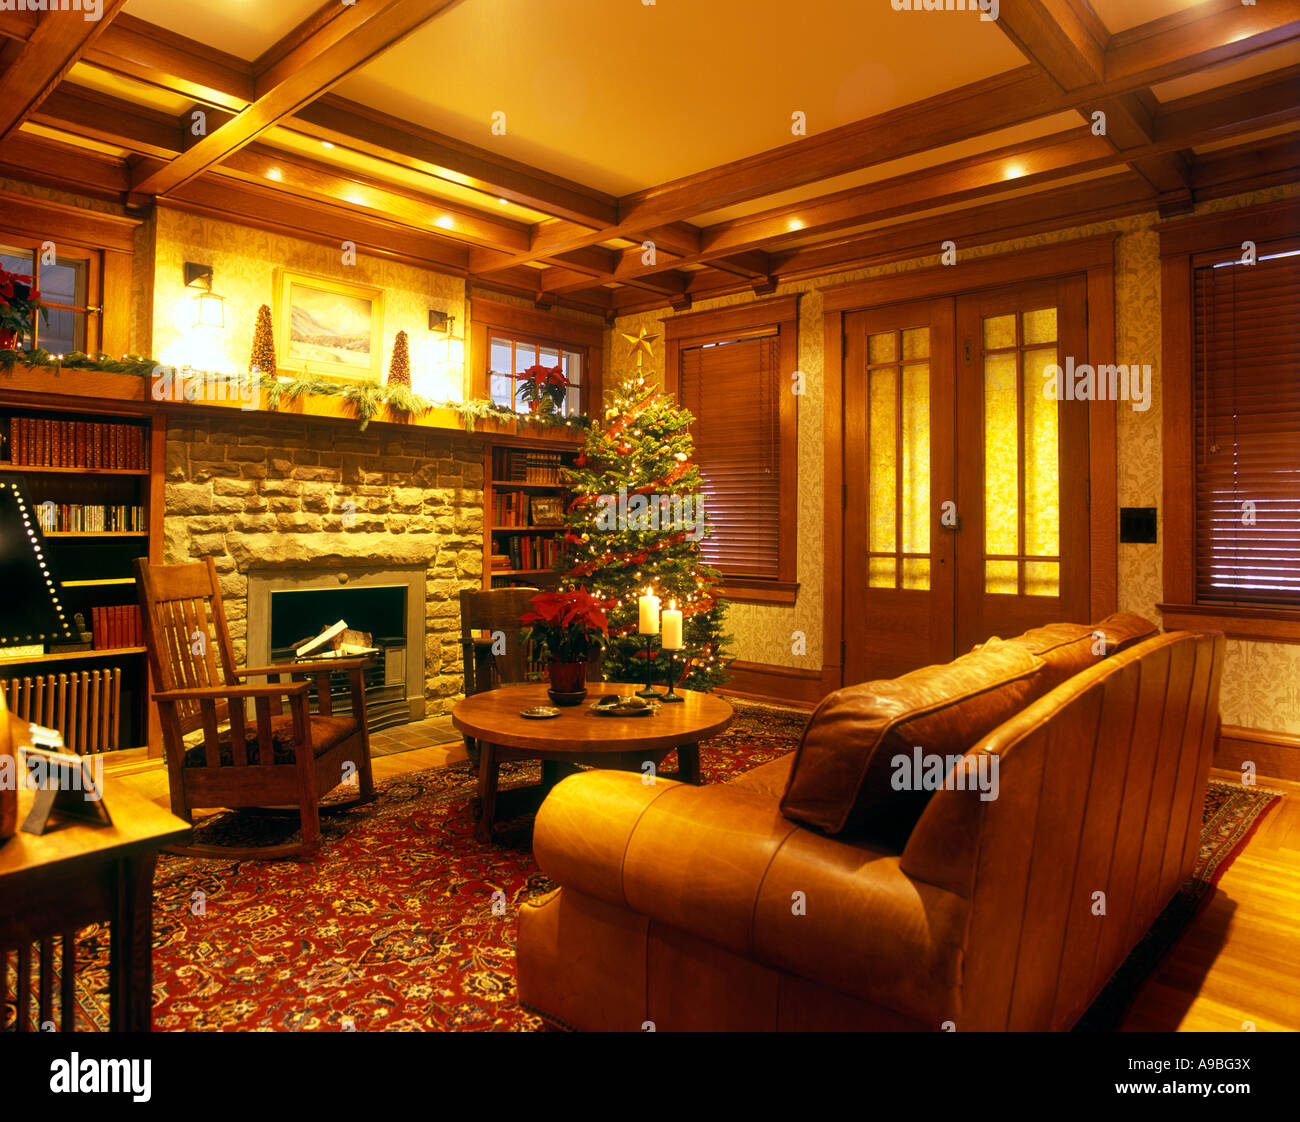 craftsman home living room interior with christmas tree and craftsman home living room interior with christmas tree and presents